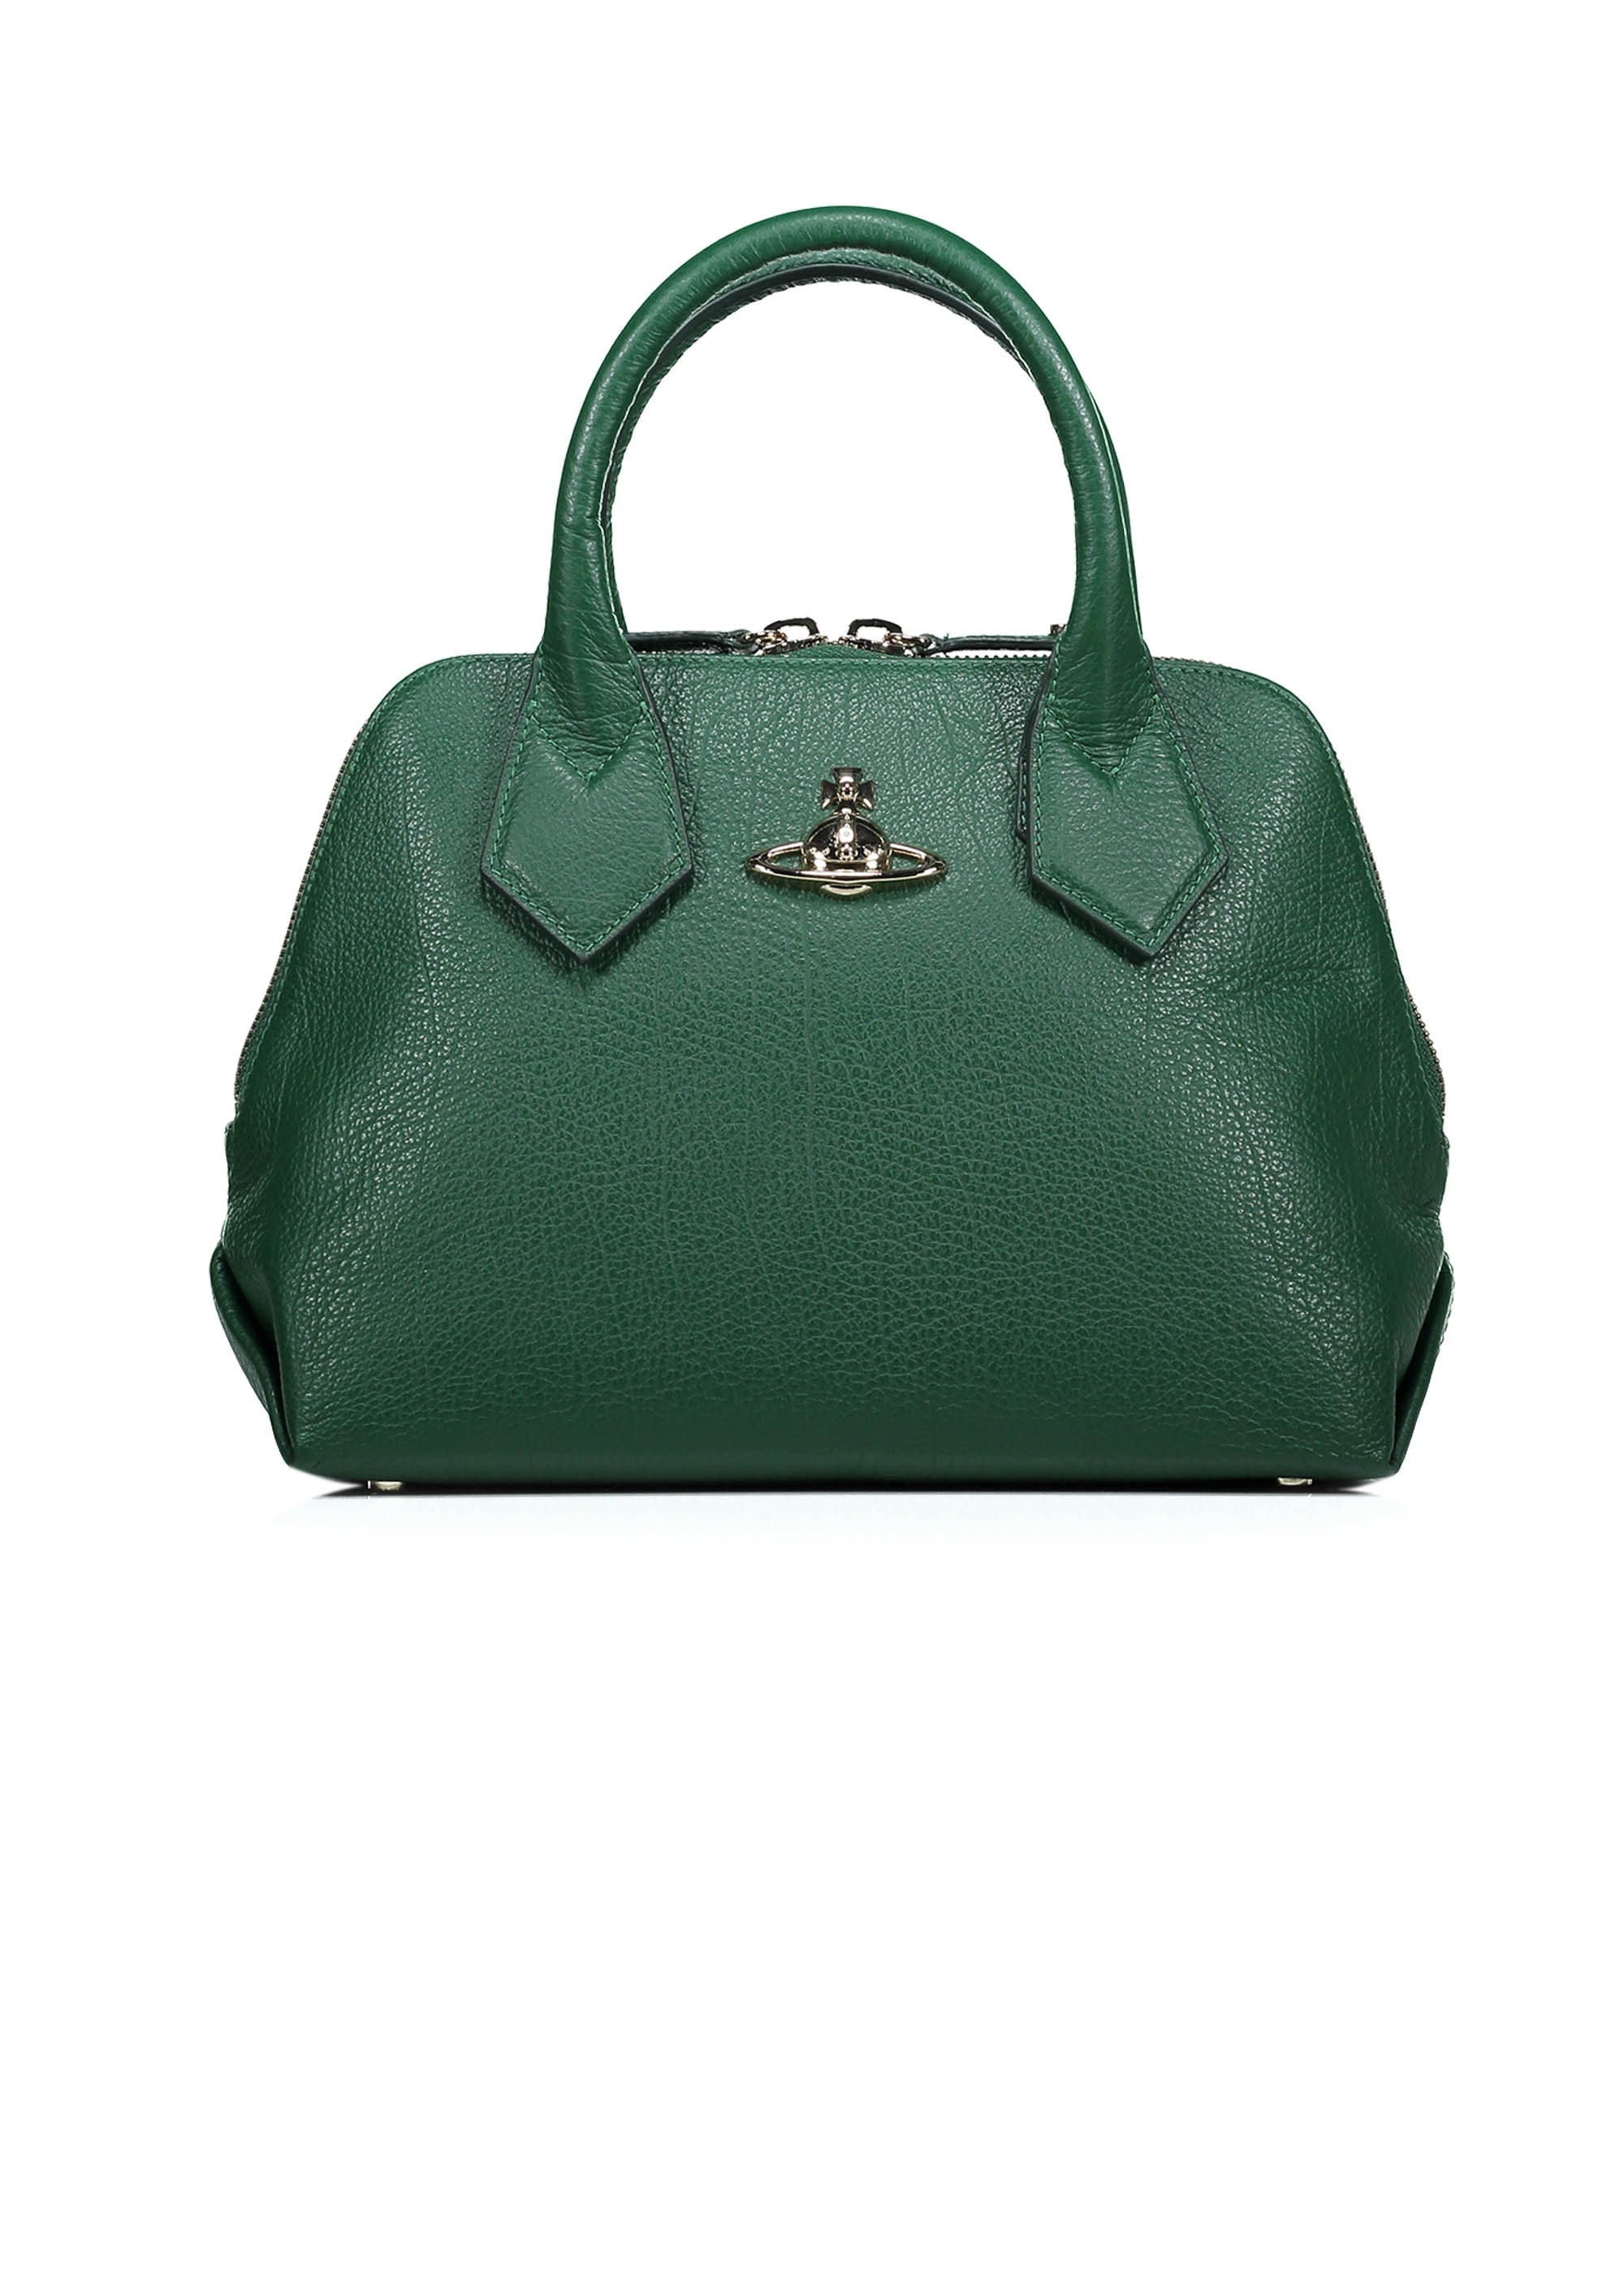 a3eef558393 Vivienne Westwood Accessories Balmoral Small Handbag - Green - Bags ...